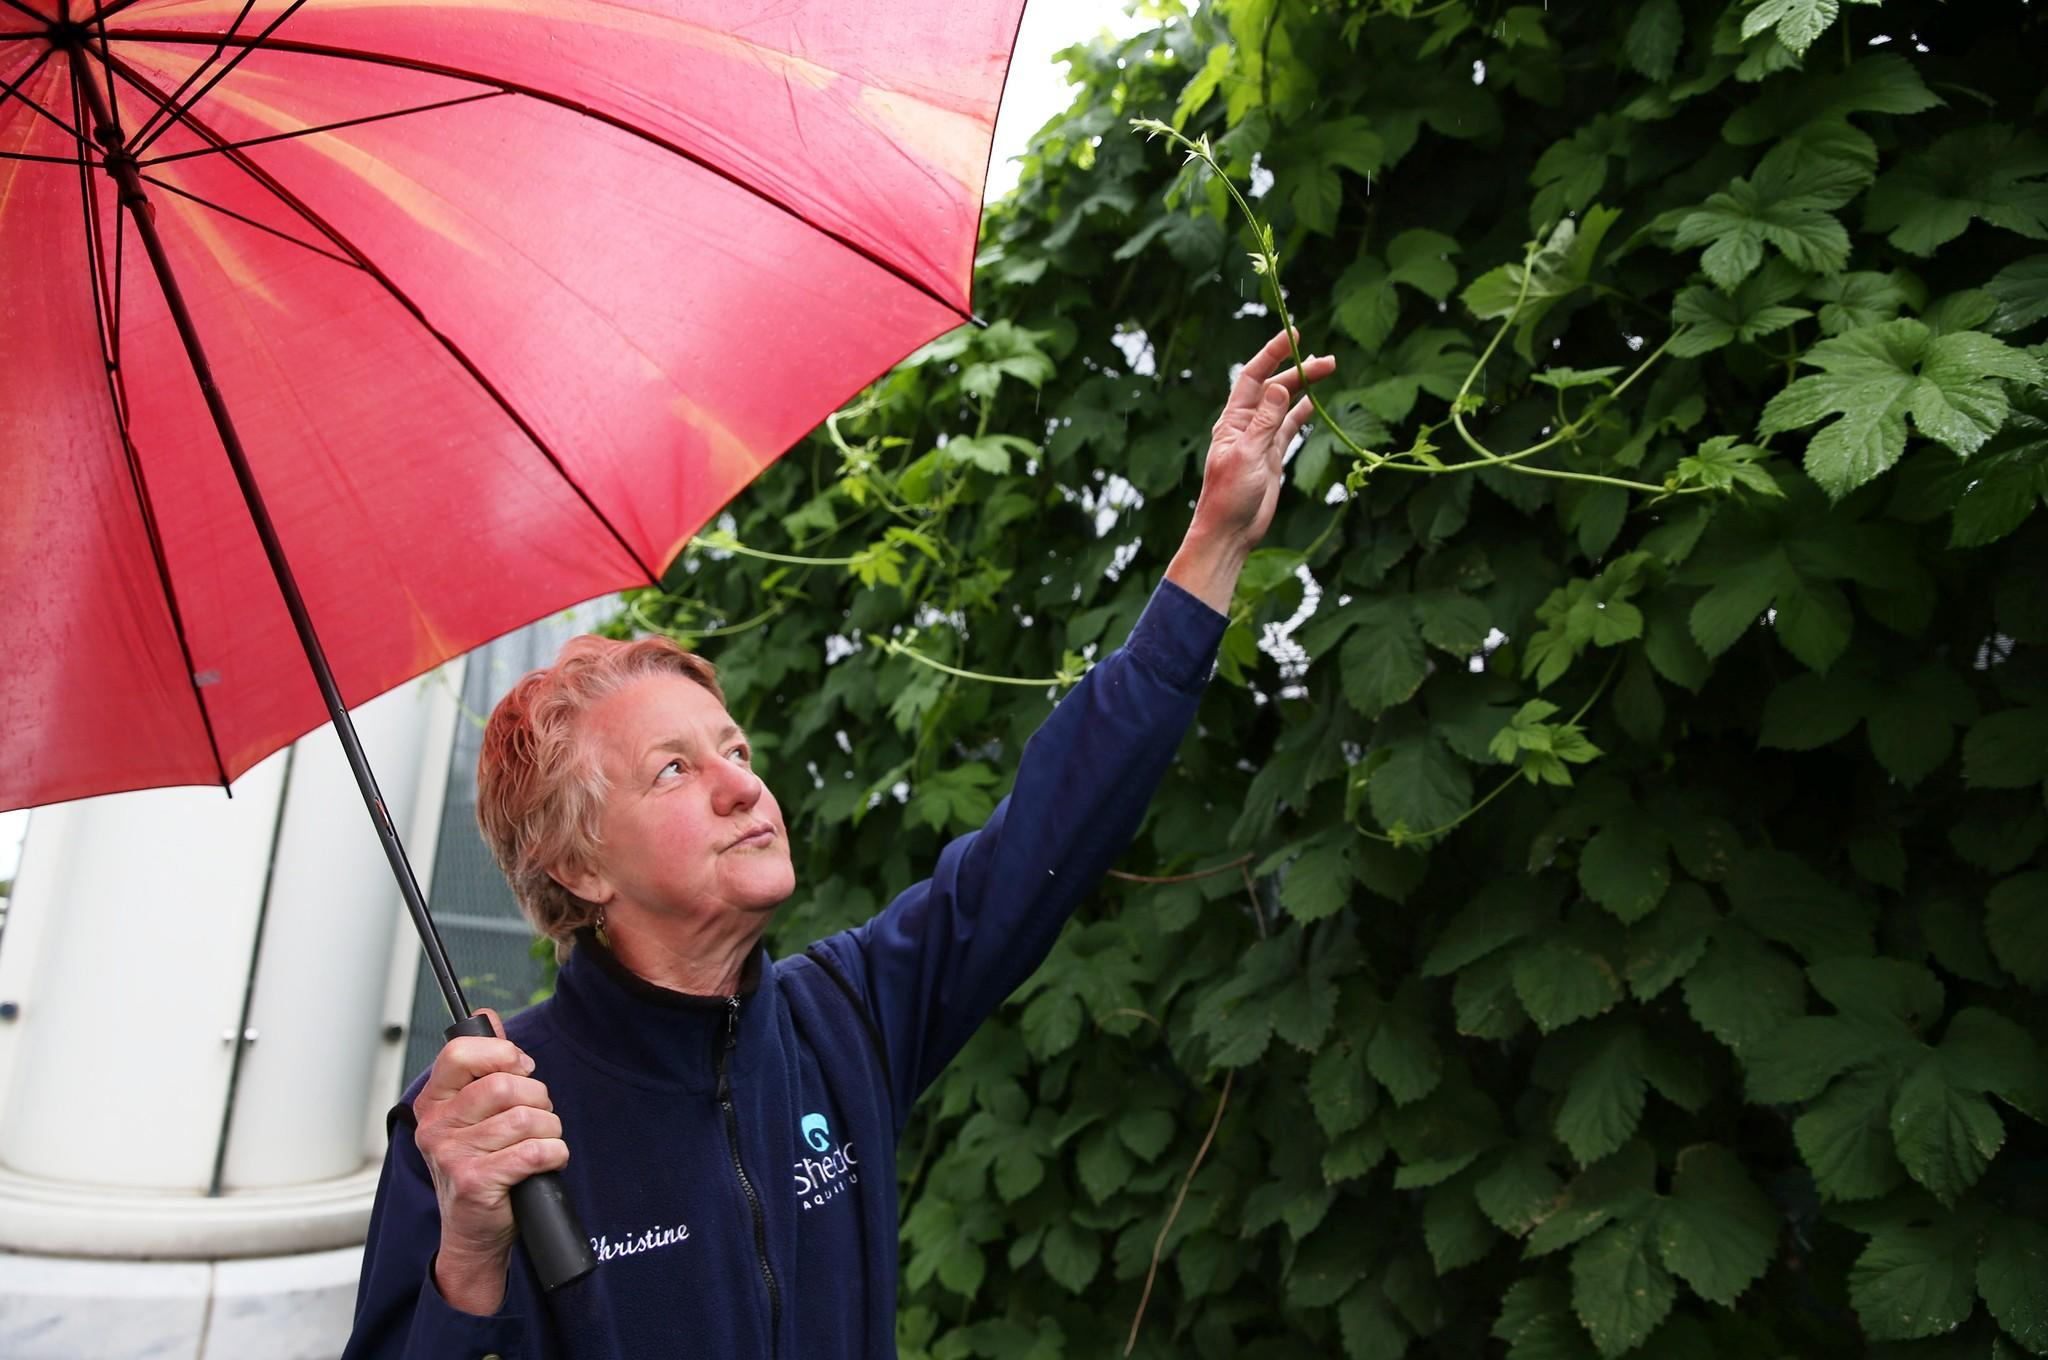 Christine Nye, horticulture programs manager at the Shedd Aquarium, stands by the hops vines that she planted behind the Shedd Aquarium. She said she did it to cover an ugly fence behind the marine area, but at the end of the season they harvest the seed cones for beer.